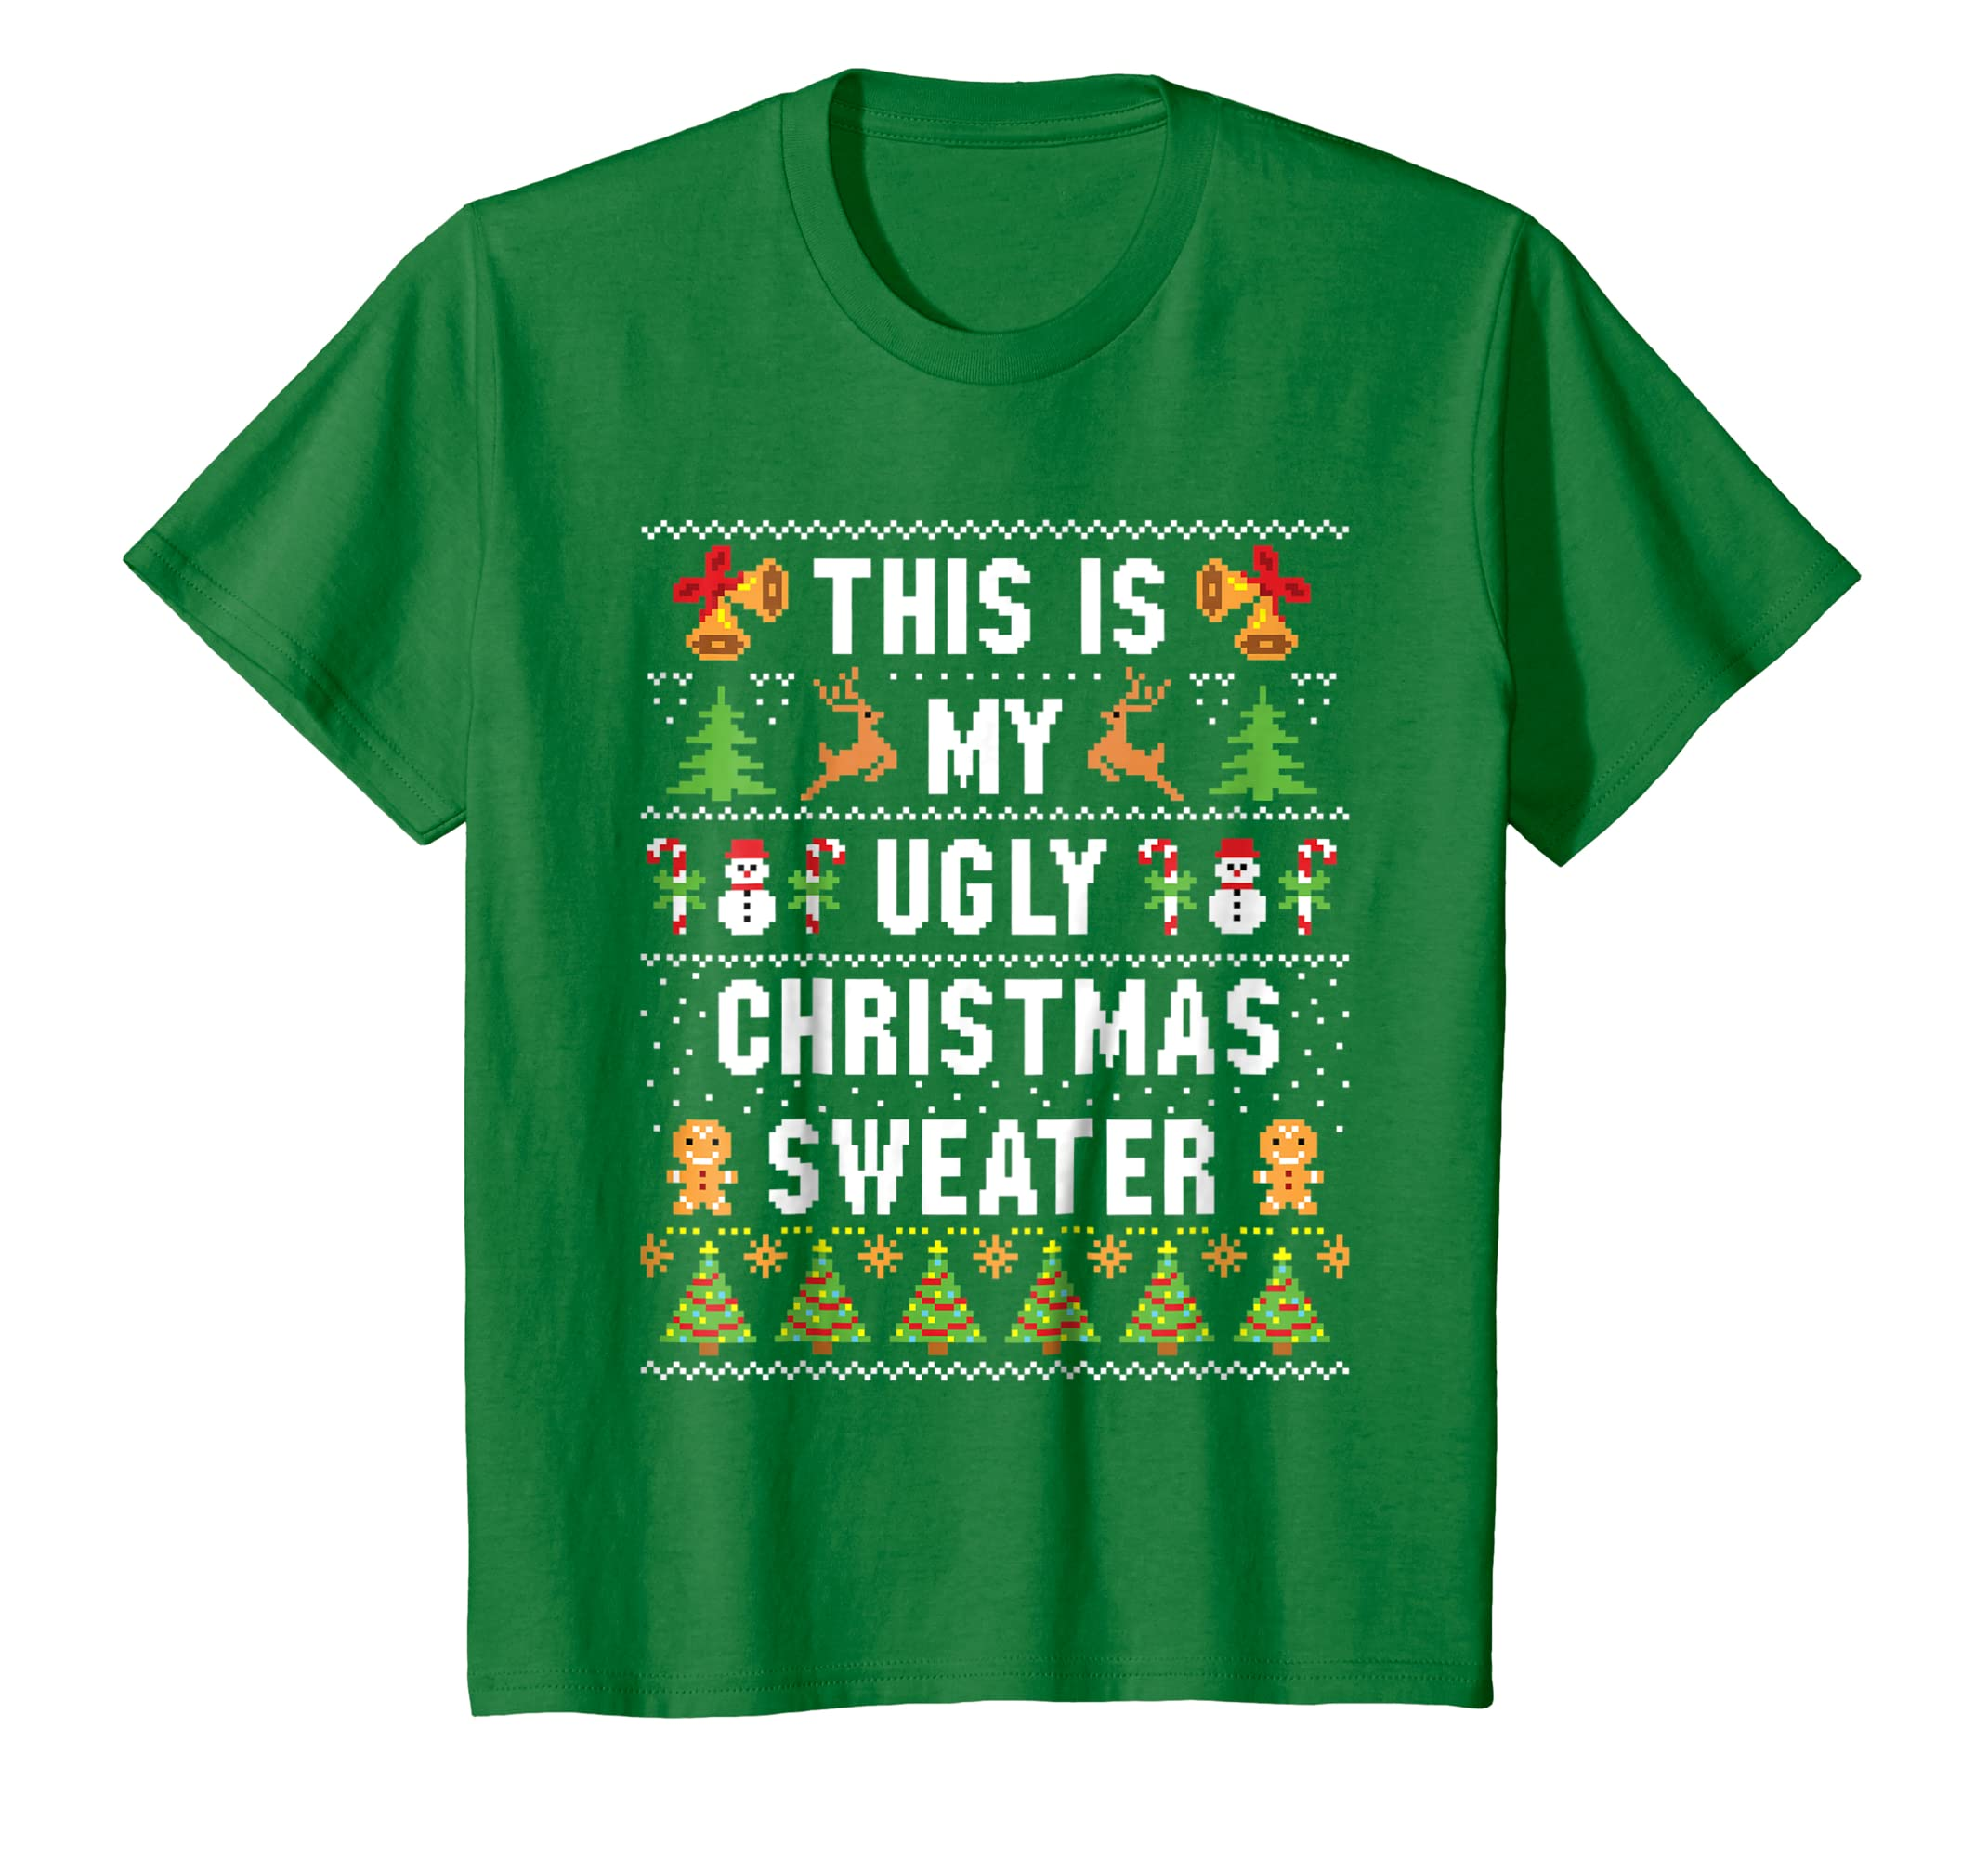 d7a71cdd9 Amazon.com: This Is My Ugly Christmas Sweater Funny Holiday T-Shirt:  Clothing